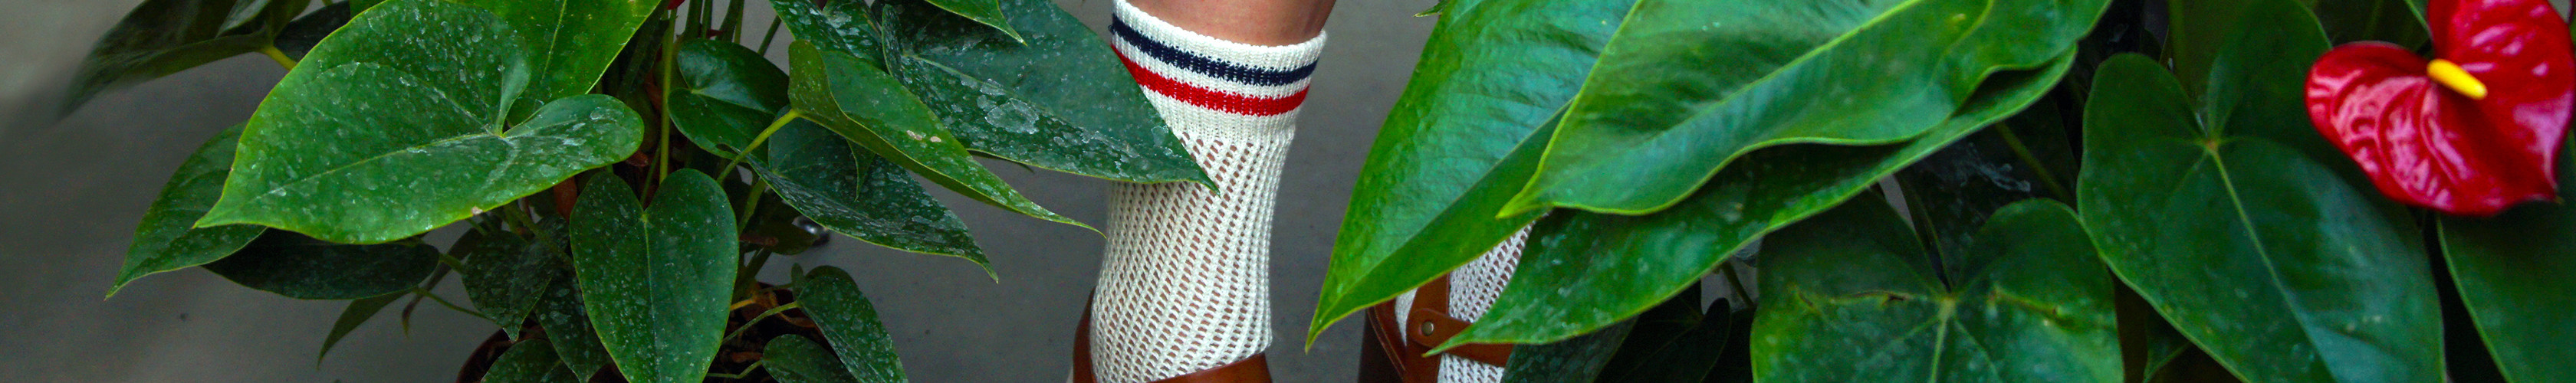 Perforated Socks